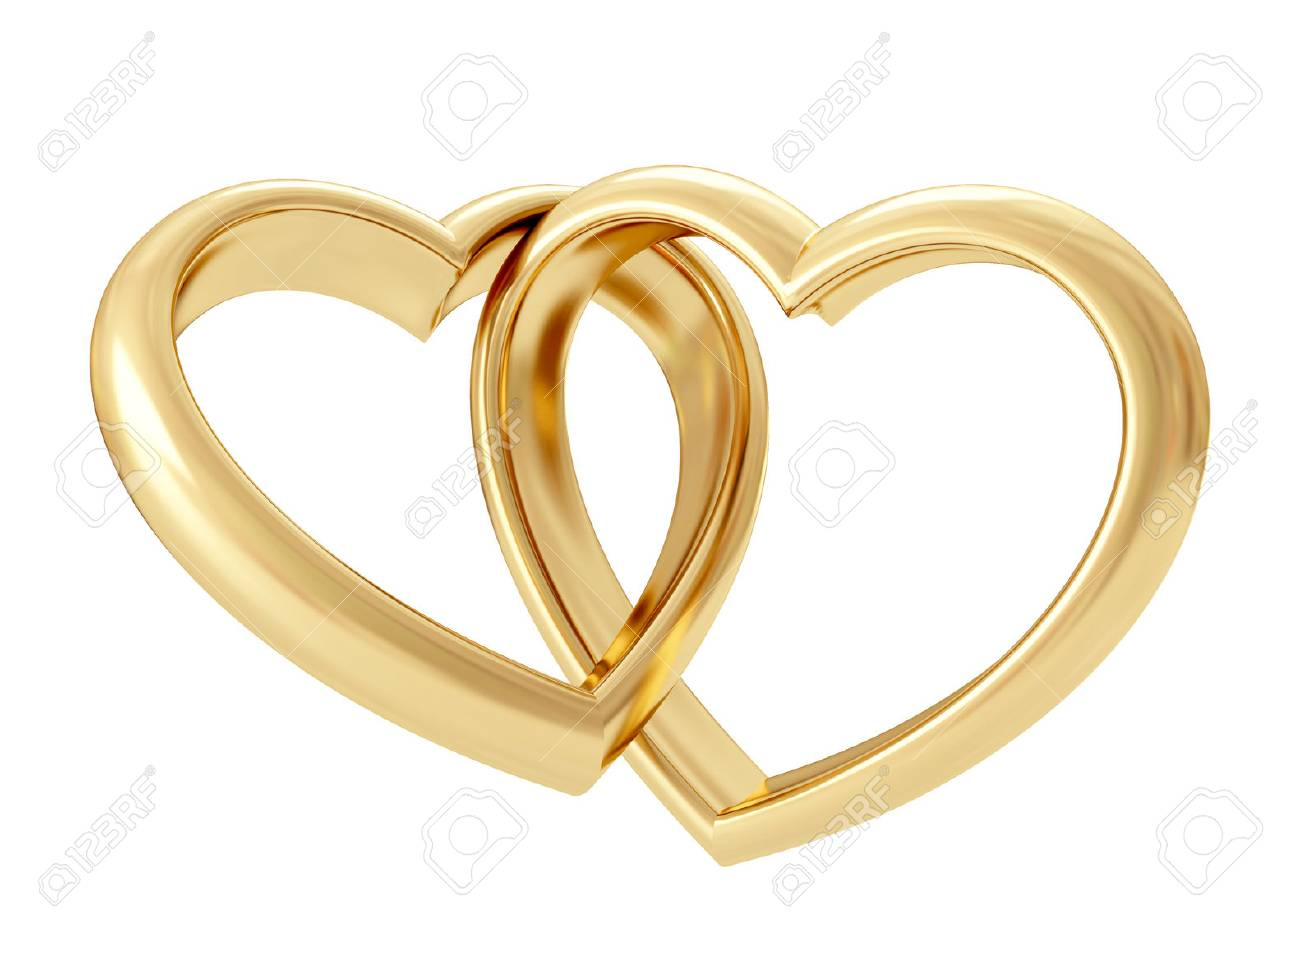 Gold heart shaped rings attached to each other. 3D rendering - 62894263